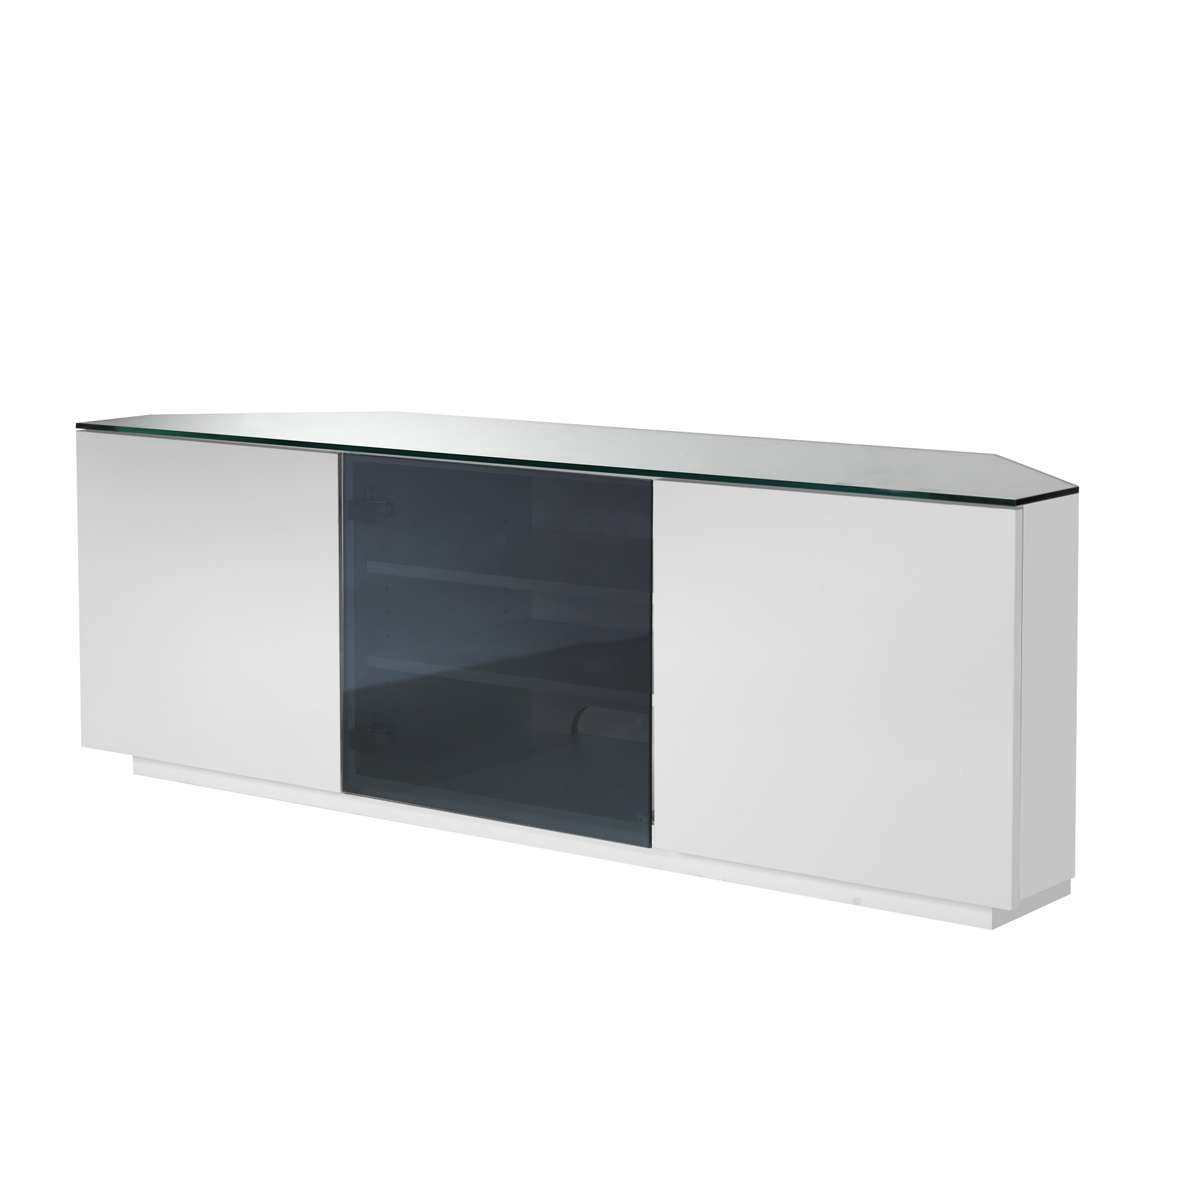 Ukcf Milan White Gloss & Black Glass Corner Tv Stand 150Cm Throughout White High Gloss Corner Tv Stands (View 17 of 20)